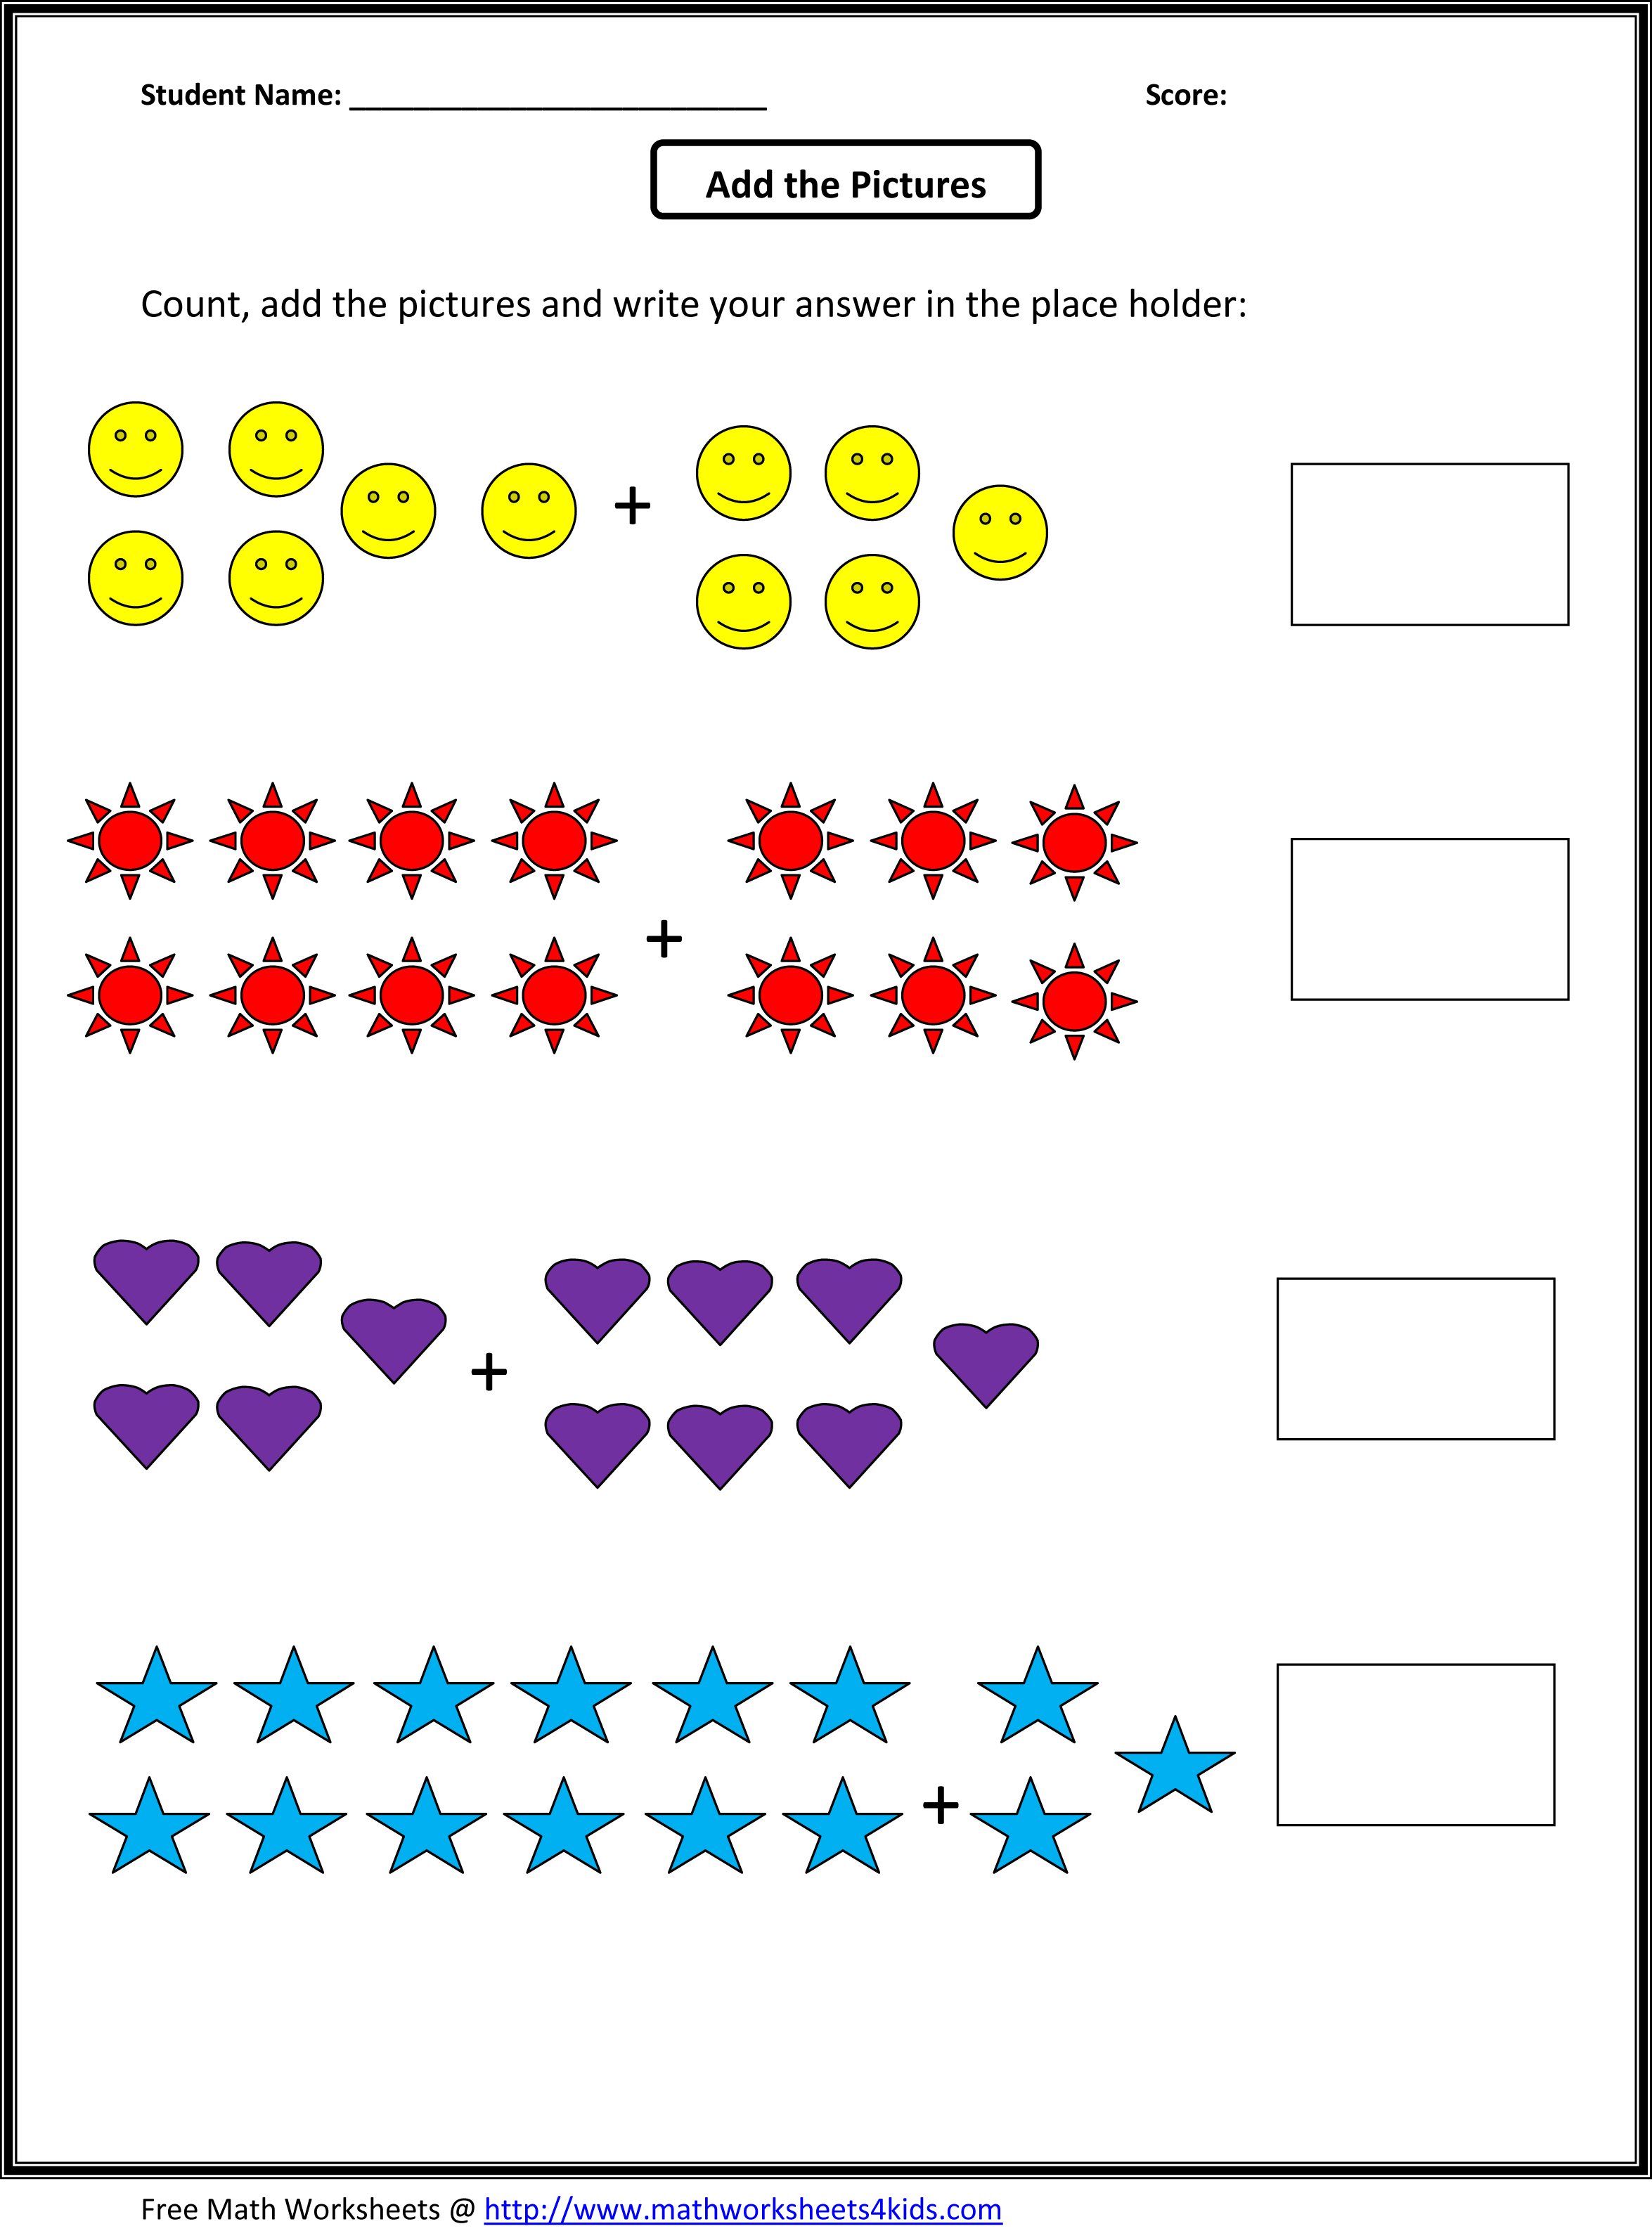 Weirdmailus  Marvelous Grade  Maths Worksheet  Reocurent With Engaging Math Worksheets For St Grade Free  Reocurent With Comely Multiplication Halloween Worksheets Also  Circle Venn Diagram Worksheet In Addition Story Sequencing Worksheets Ks And Cub Scouts Belt Loops Worksheet As Well As Number Of Worksheets In Excel Additionally Division Exponents Worksheet From Reocurentcom With Weirdmailus  Engaging Grade  Maths Worksheet  Reocurent With Comely Math Worksheets For St Grade Free  Reocurent And Marvelous Multiplication Halloween Worksheets Also  Circle Venn Diagram Worksheet In Addition Story Sequencing Worksheets Ks From Reocurentcom